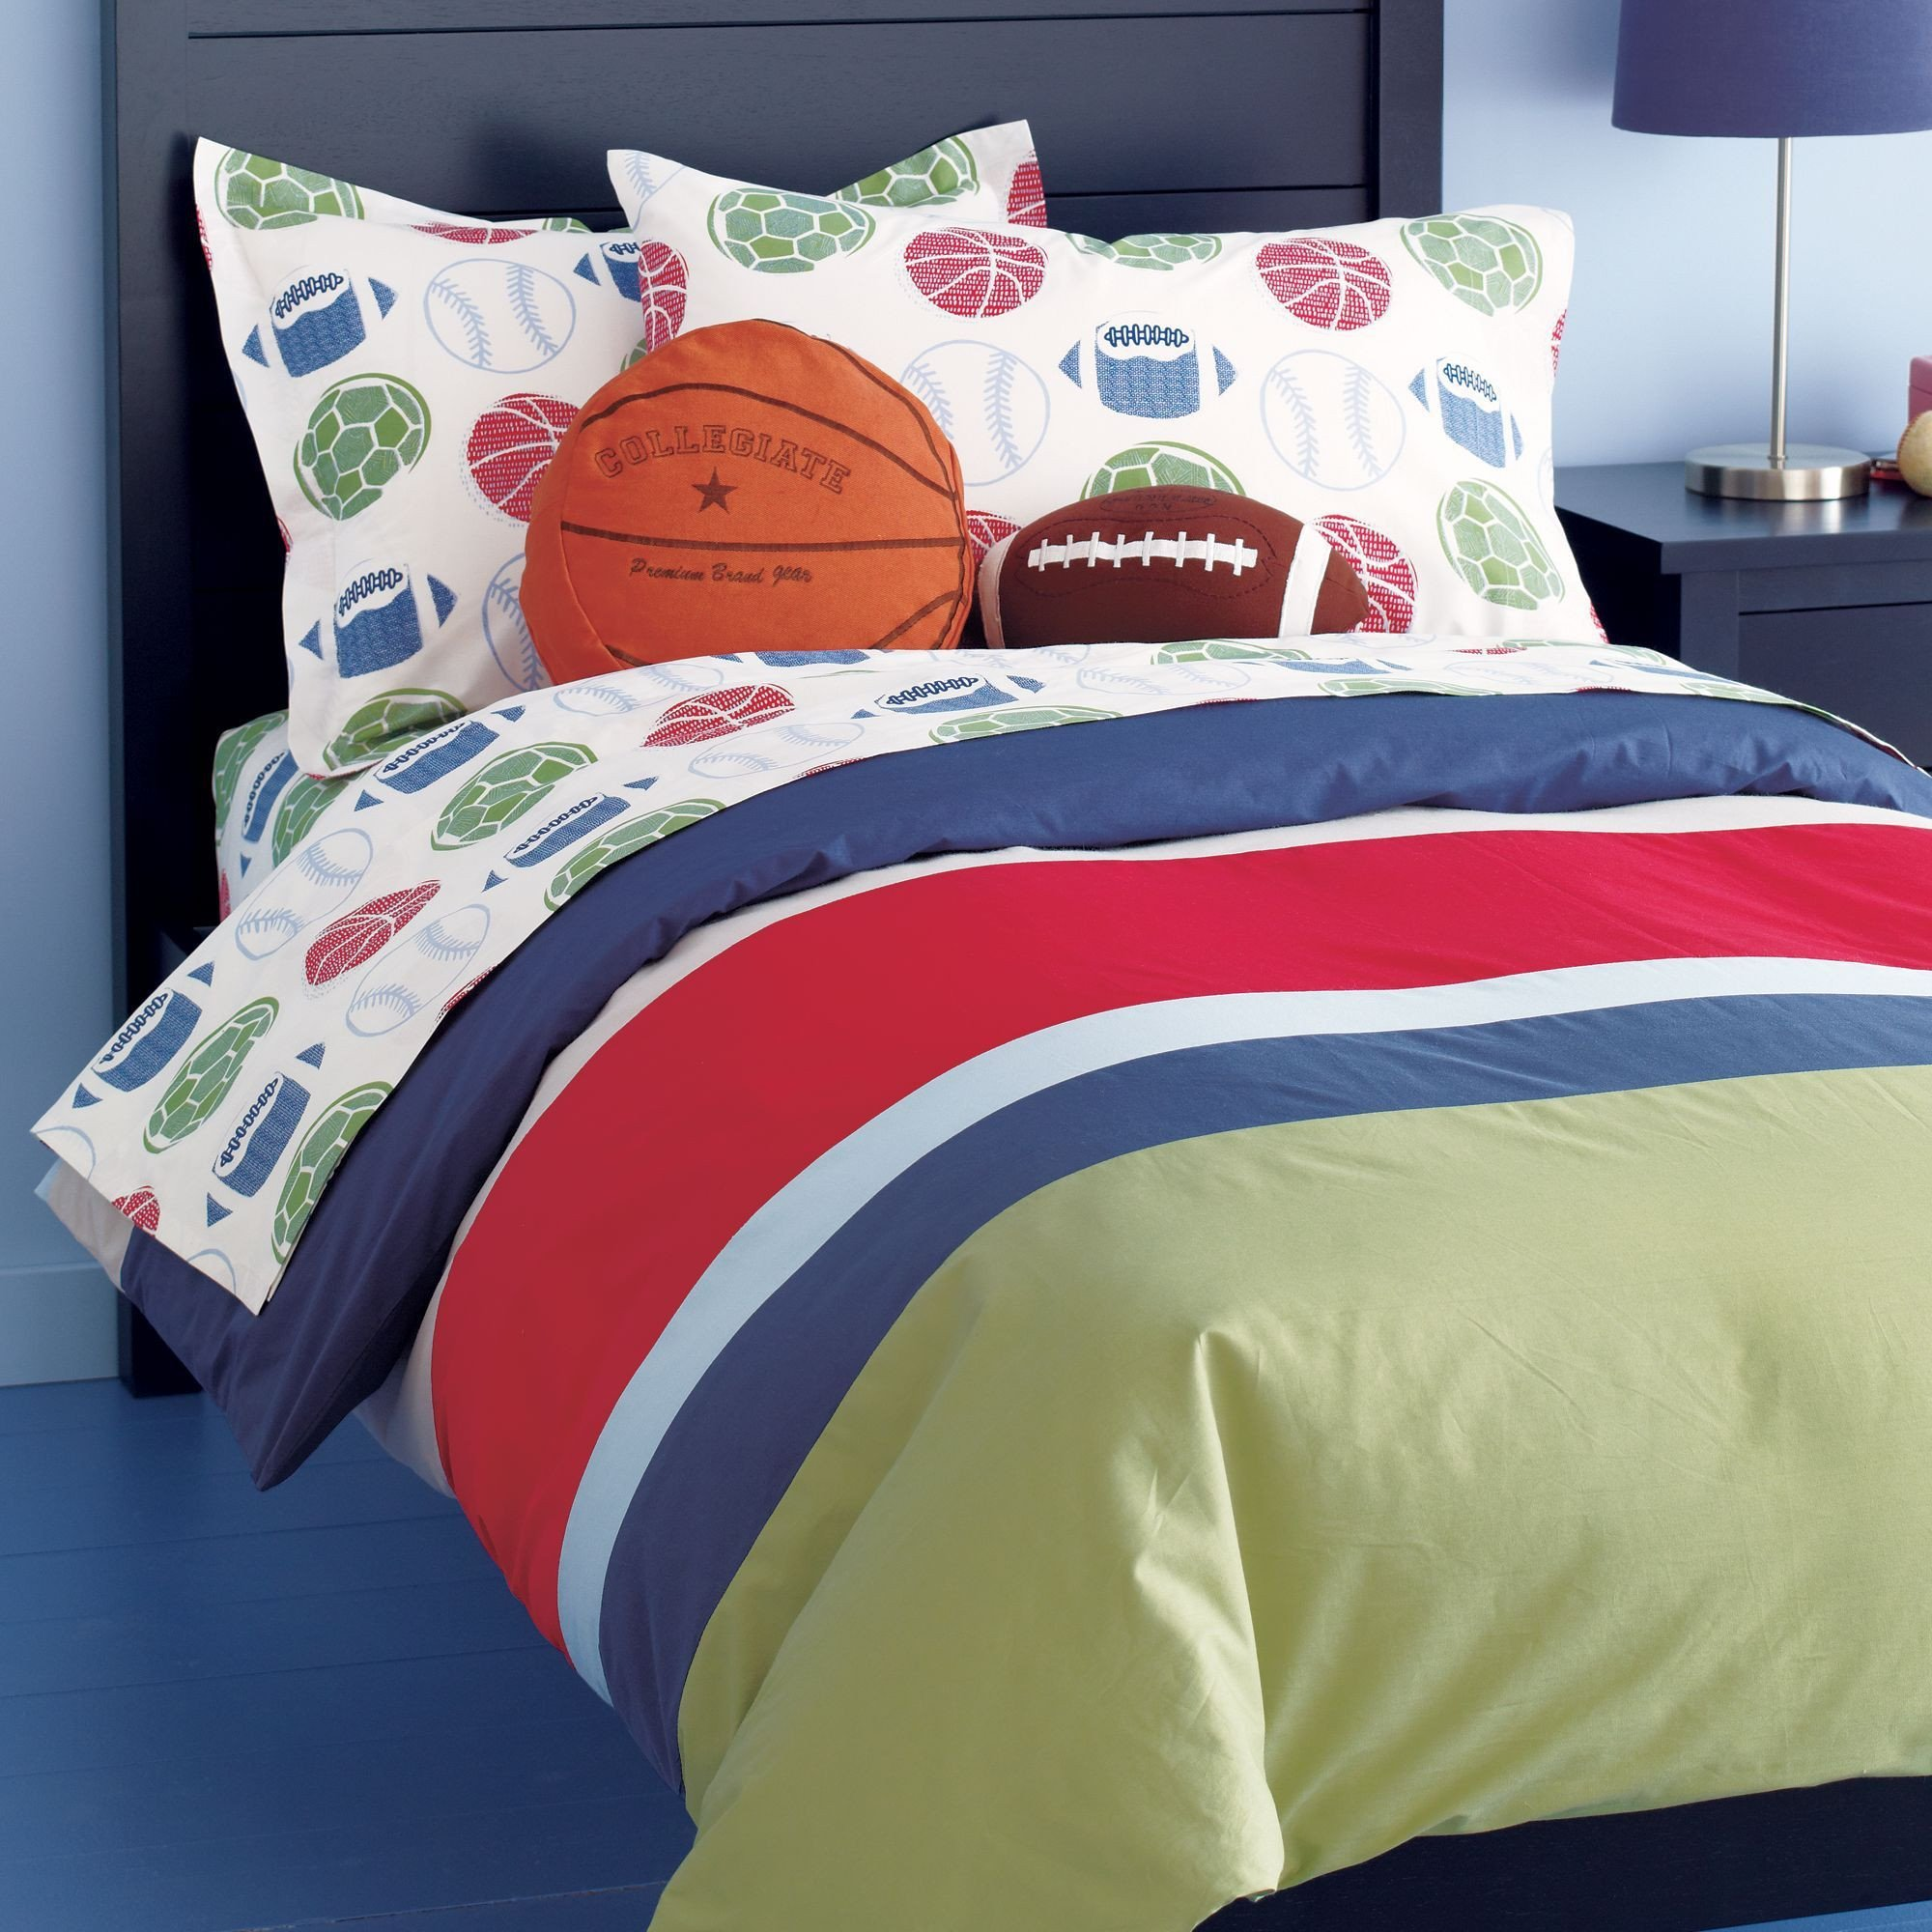 Sports Bedroom Decorating Ideas Fresh Sports Bedding Set Basketball Football Baseballs and